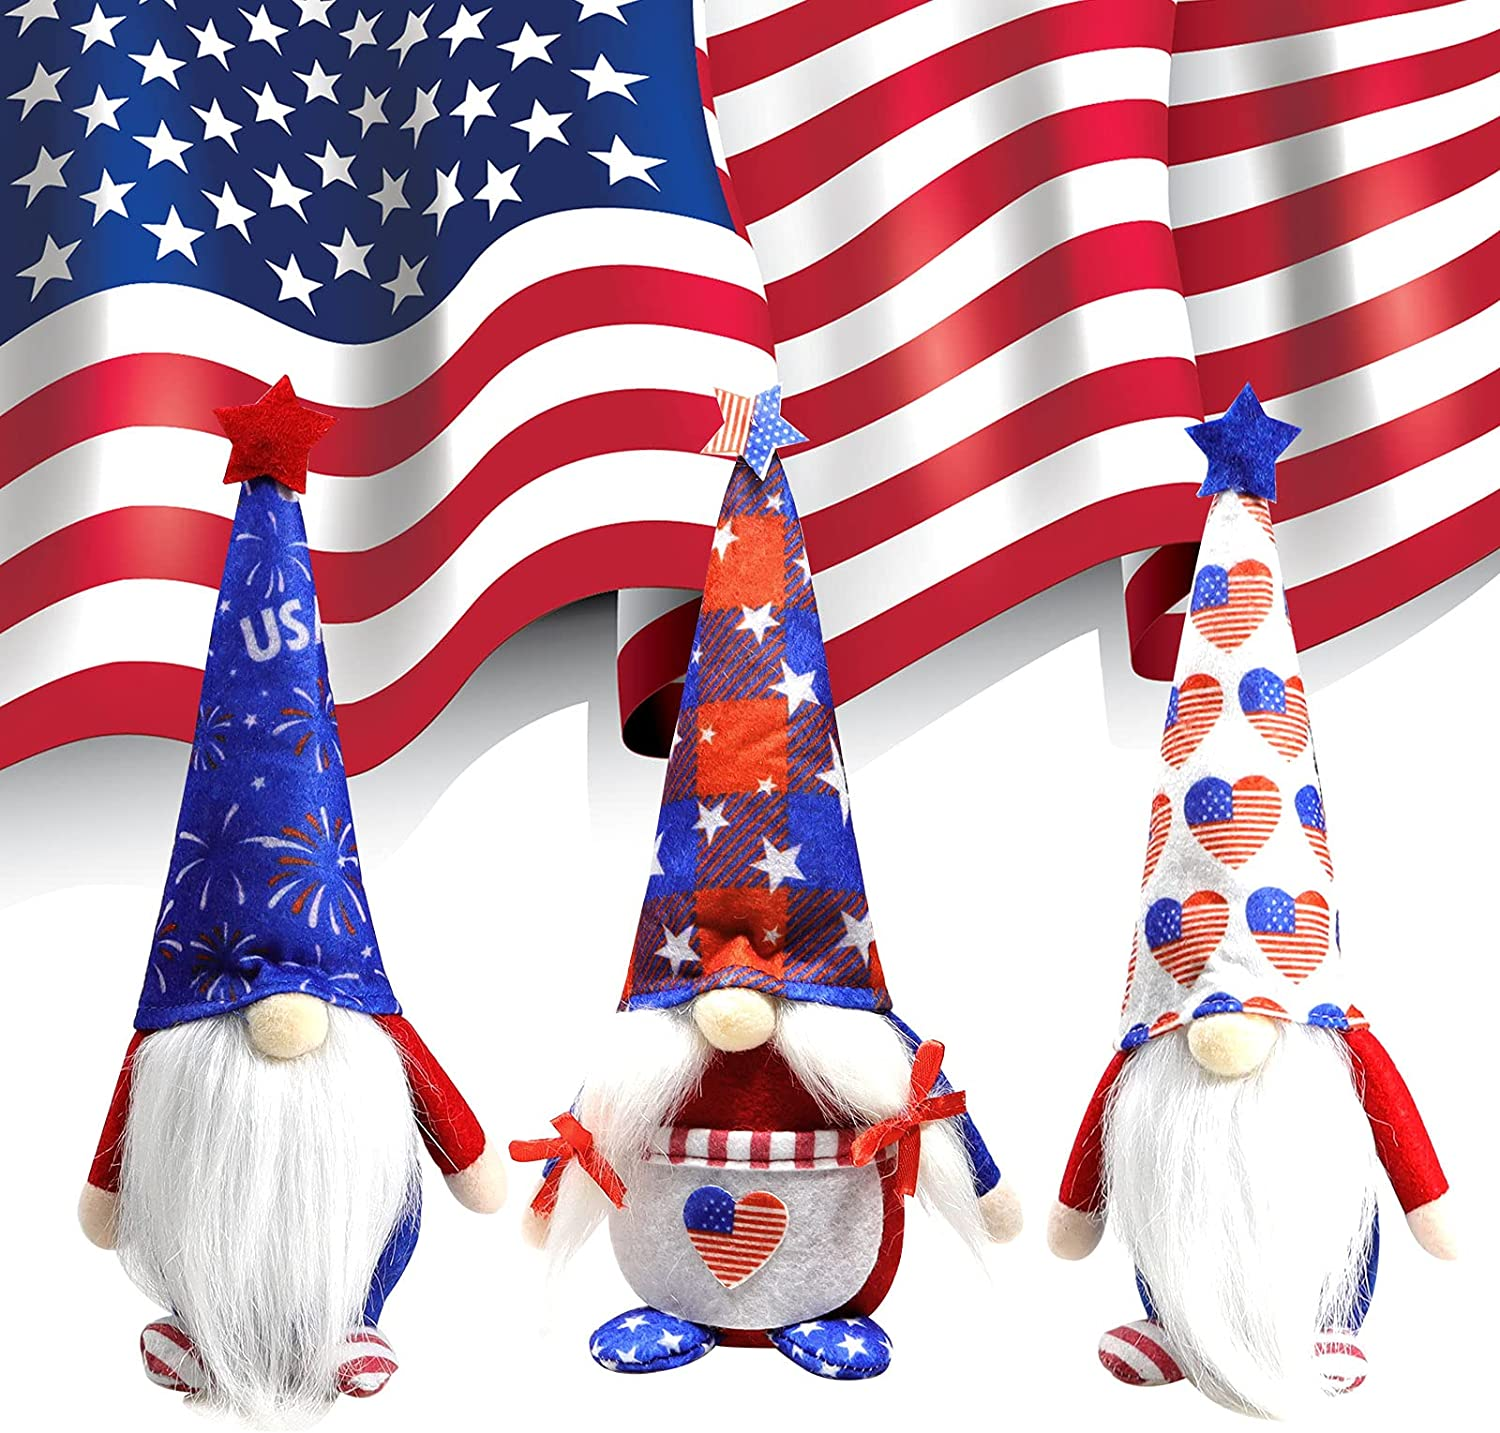 Patriotic Gnome Plush, 4th of July Home Decor, Stars Stripes Handmake Scandinavian Tomte Doll for American Memorial Day Independence Day Decorations Home Kitchen Household Ornaments